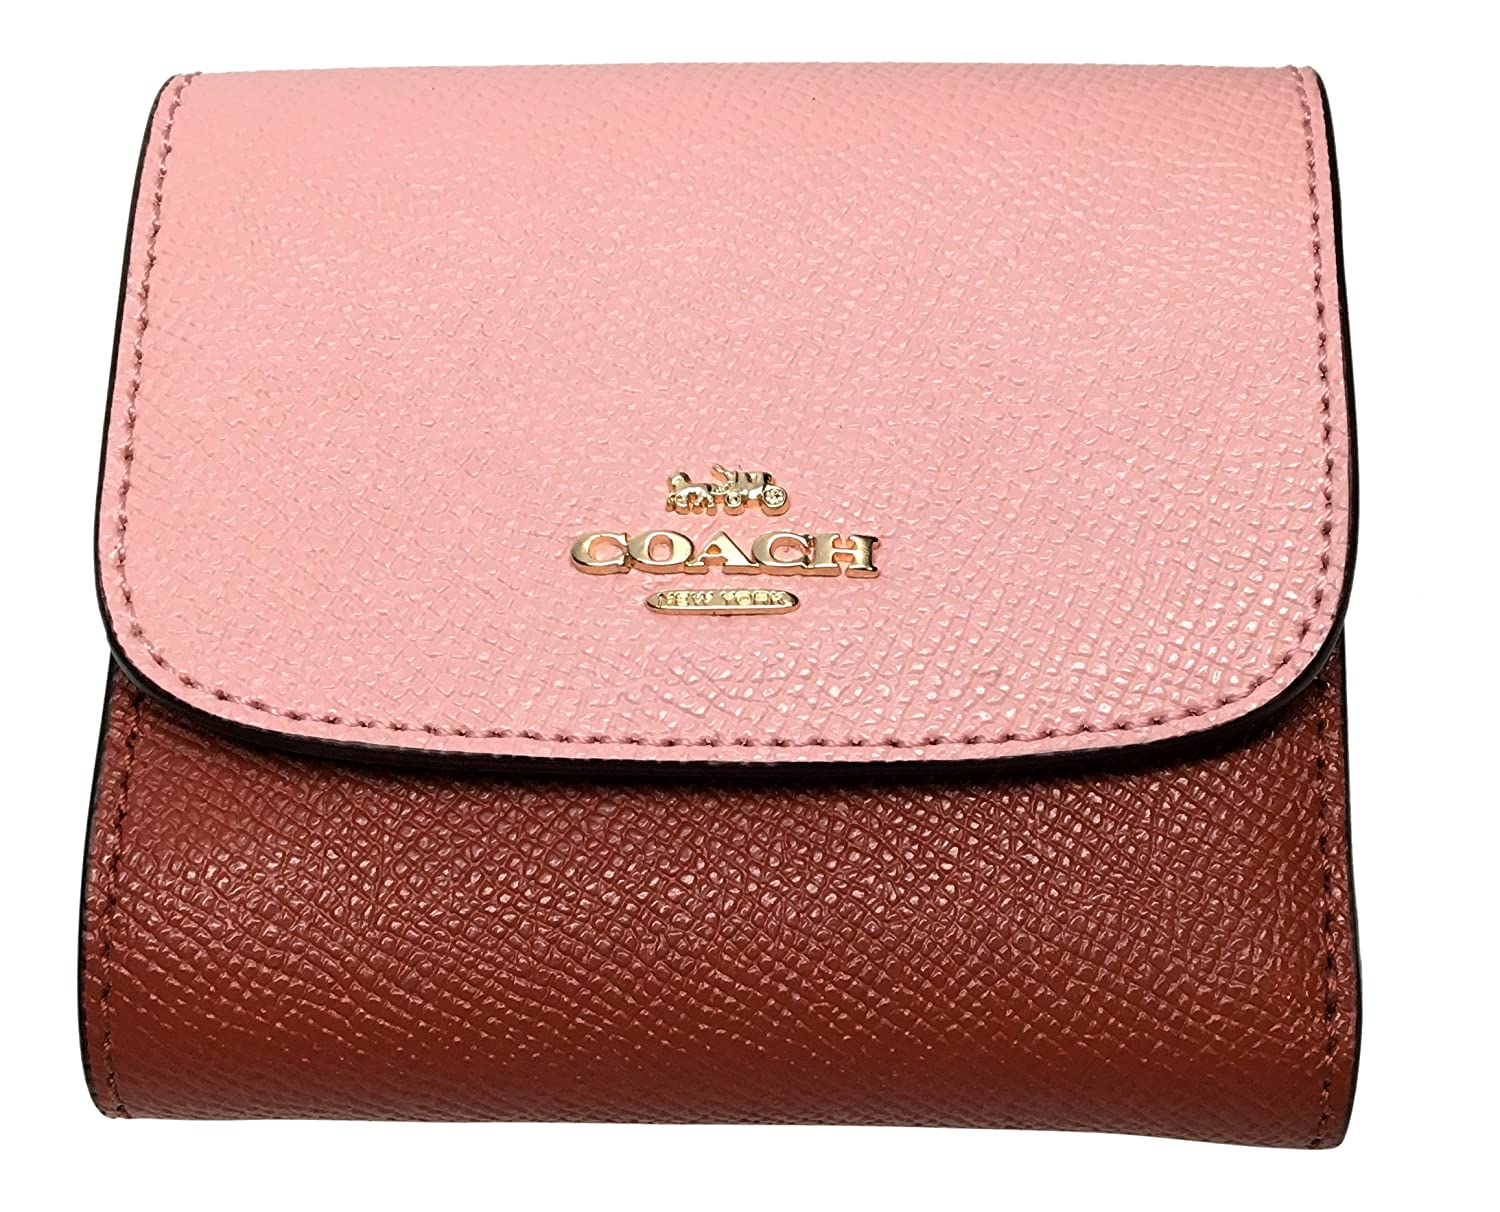 COACH Color Block Small Wallet In Crossgrain Leather Blush ...